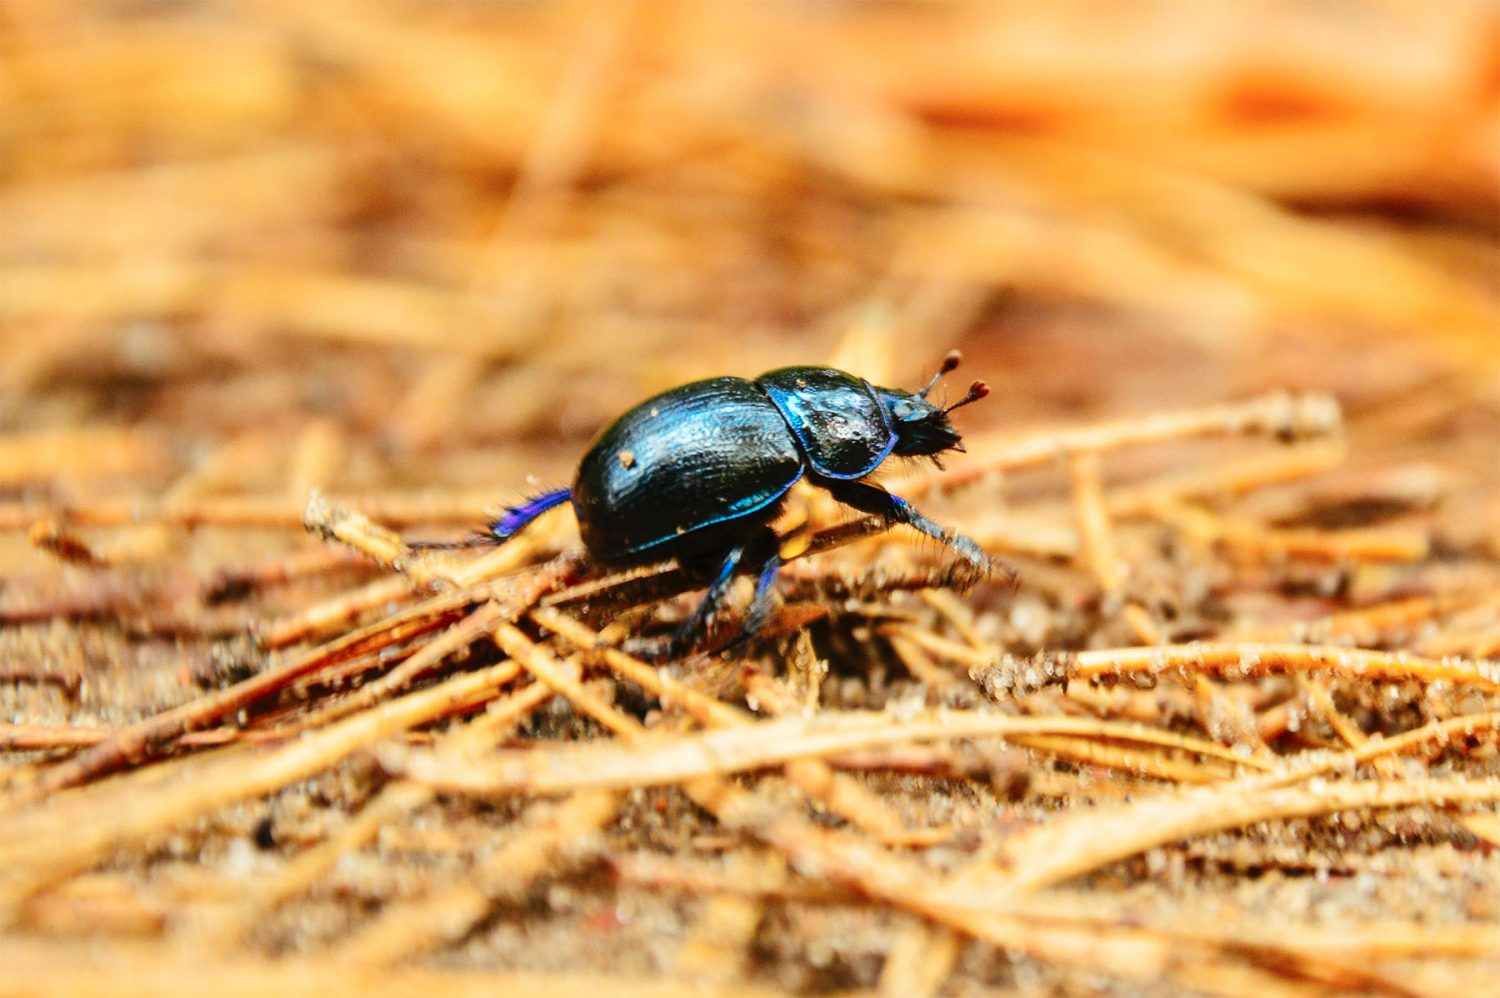 A Ground beetle walking on the ground.